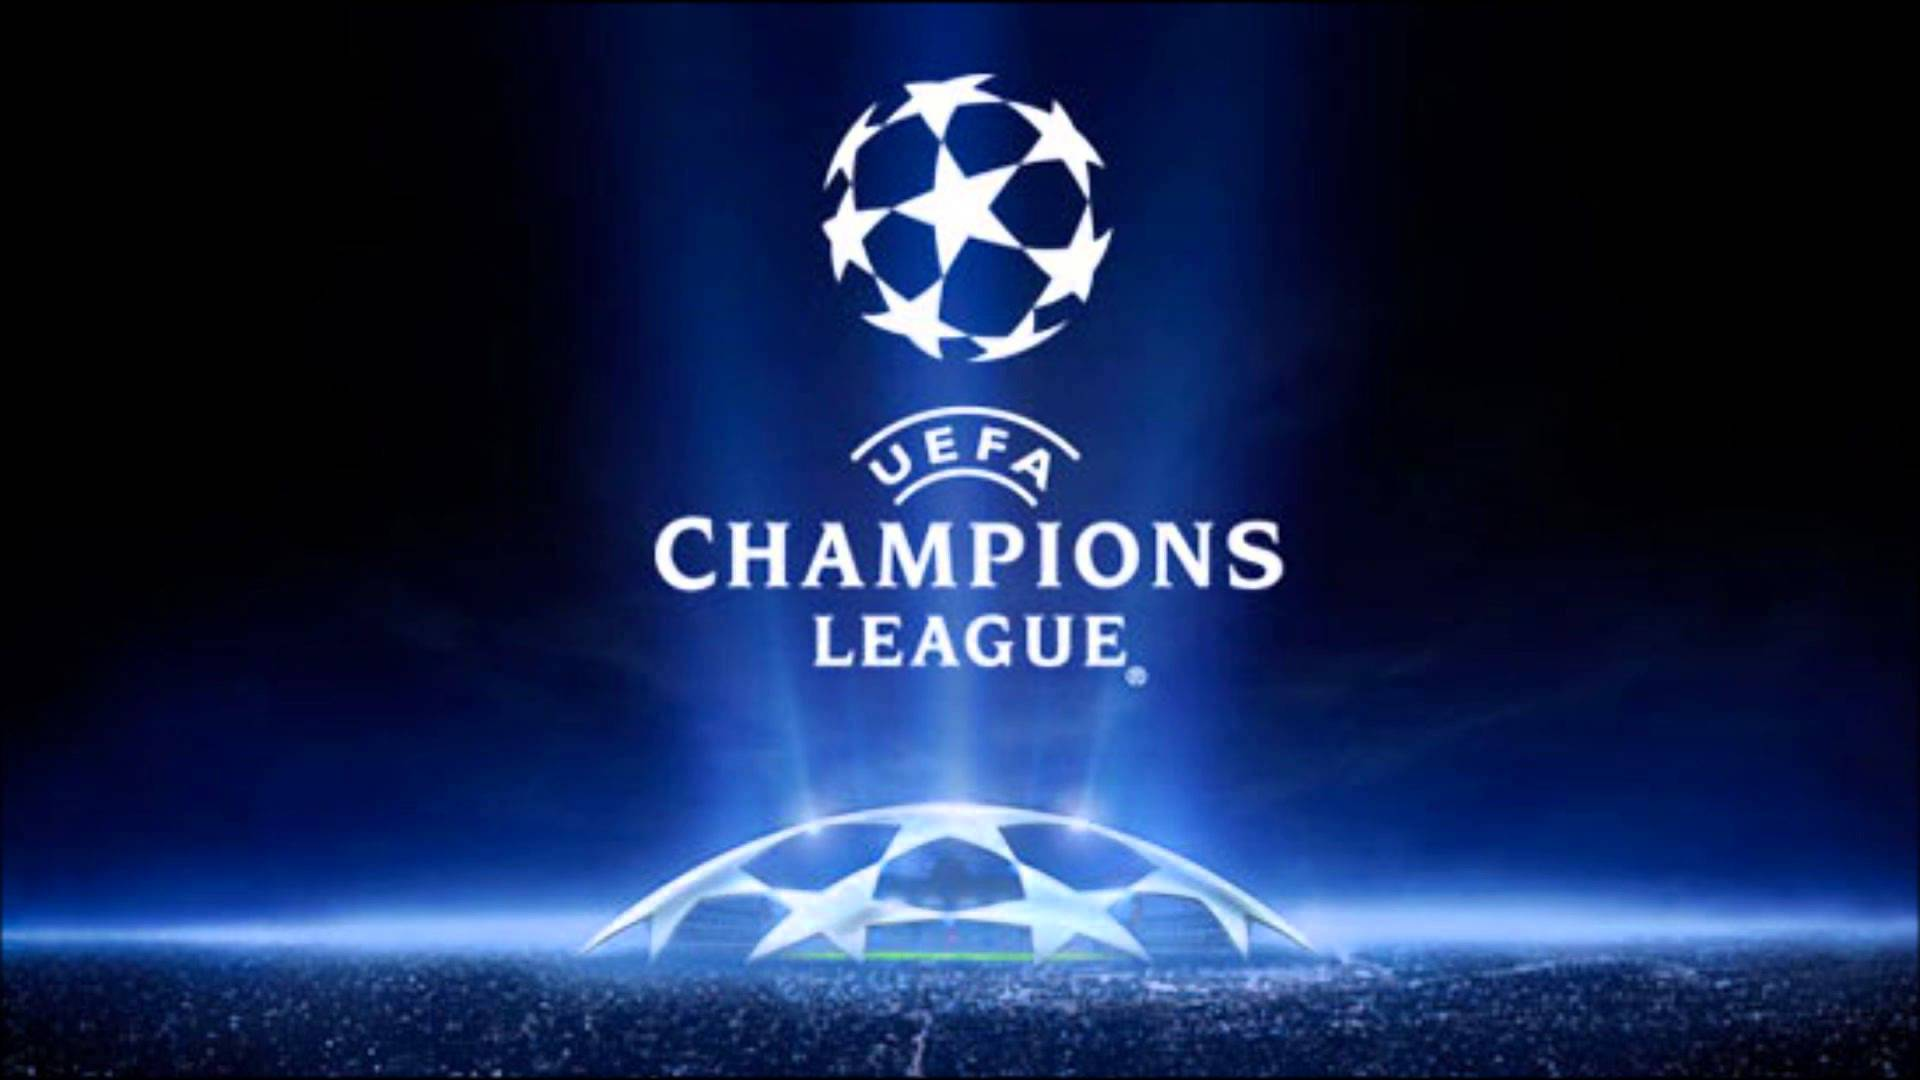 UEFA Champions League: Teams In For Round of 16 - Gazette ...